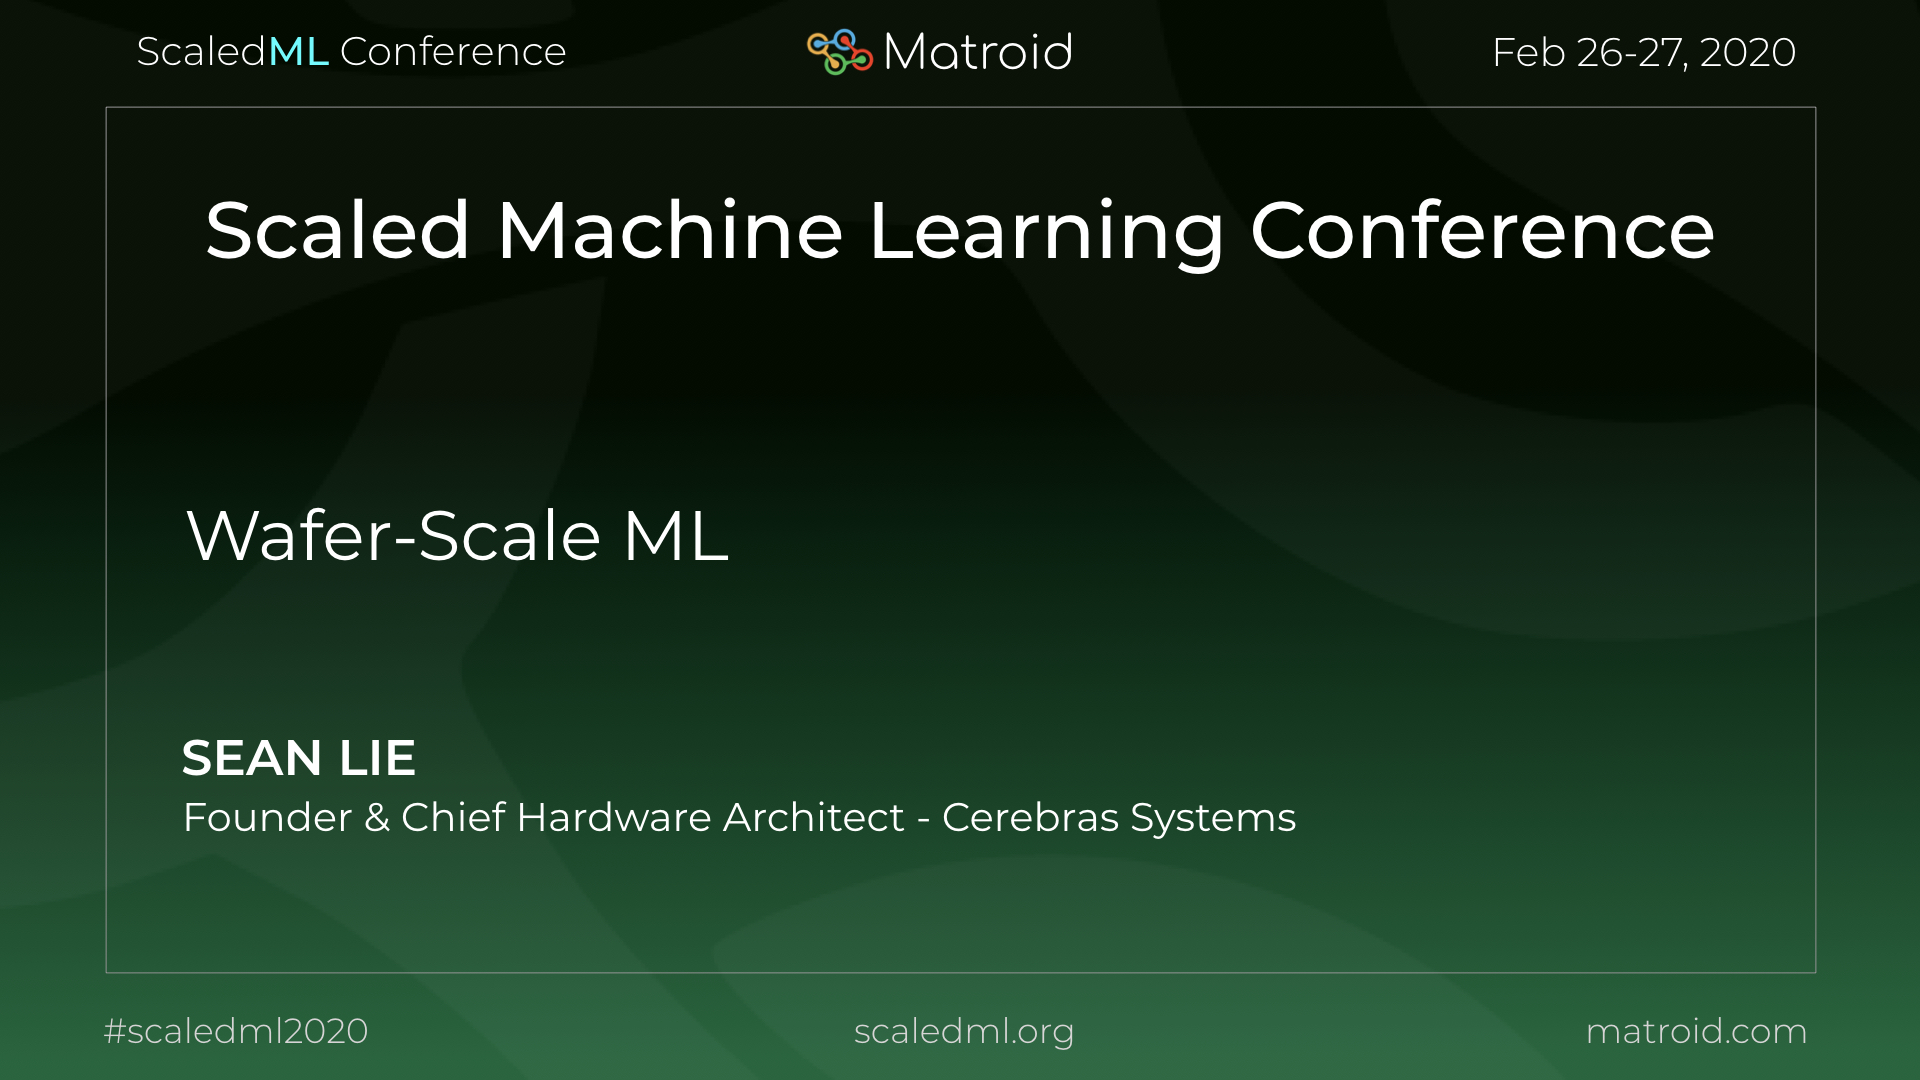 Sean Lie Cerebras Systems Wafer-Scale ScaledML Conference TPU CPU GPU Computer Vision AI Artificial Intelligence Machine Learning